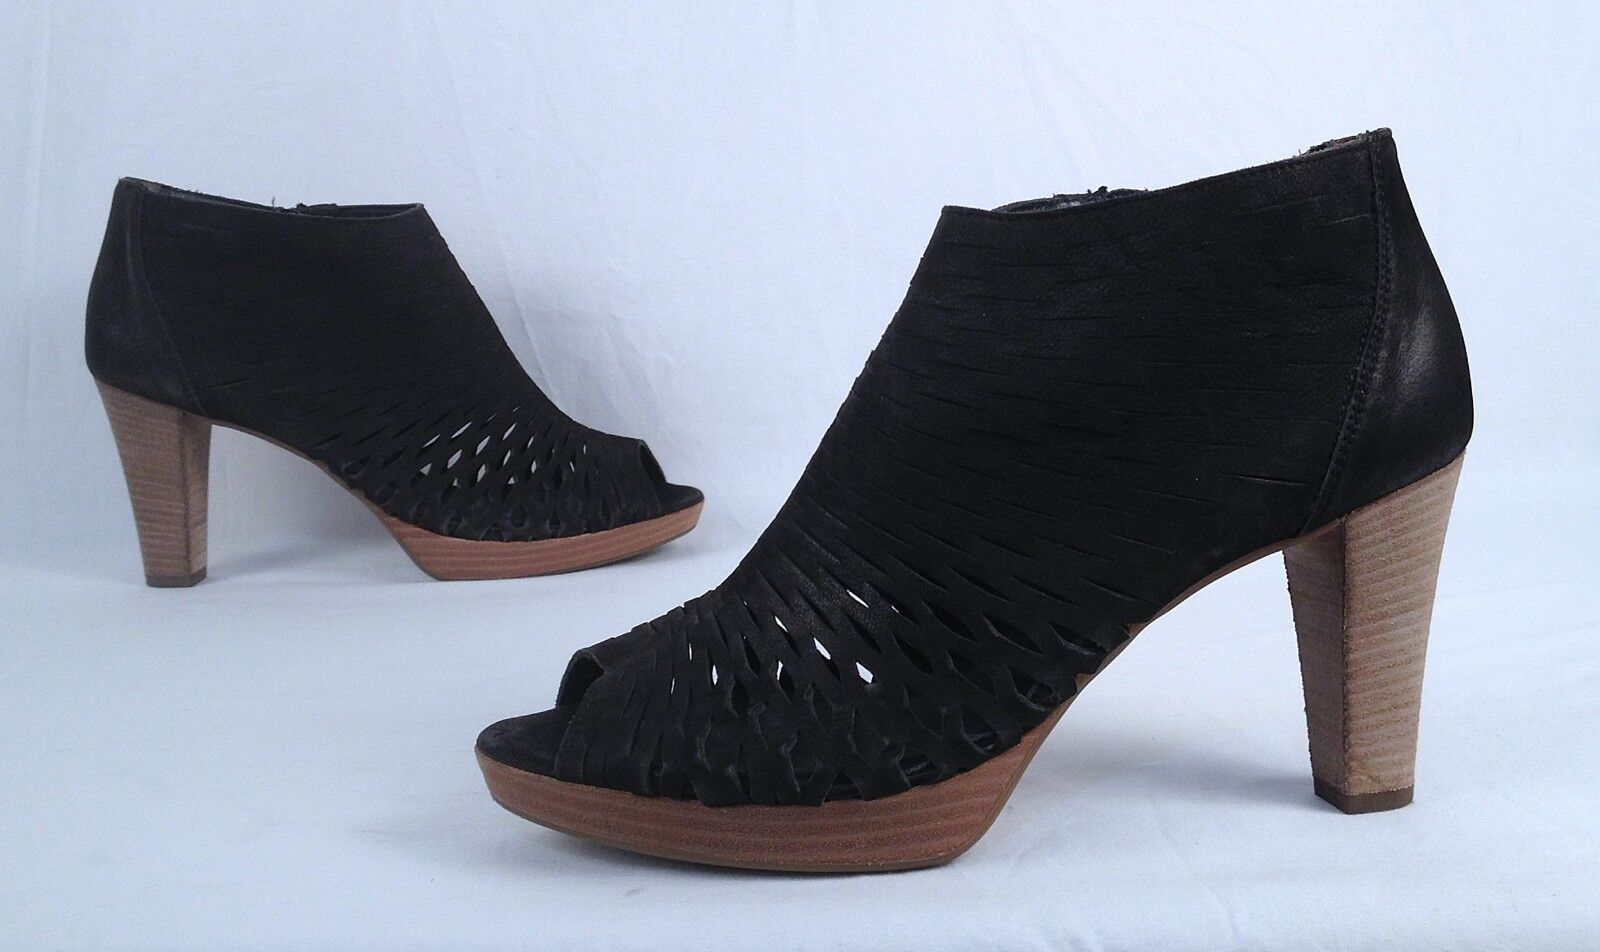 NEW   Paul verde Perforated Perforated Perforated Sandal- nero- Dimensione 9 US  6.5  398  (BB7) a4a995